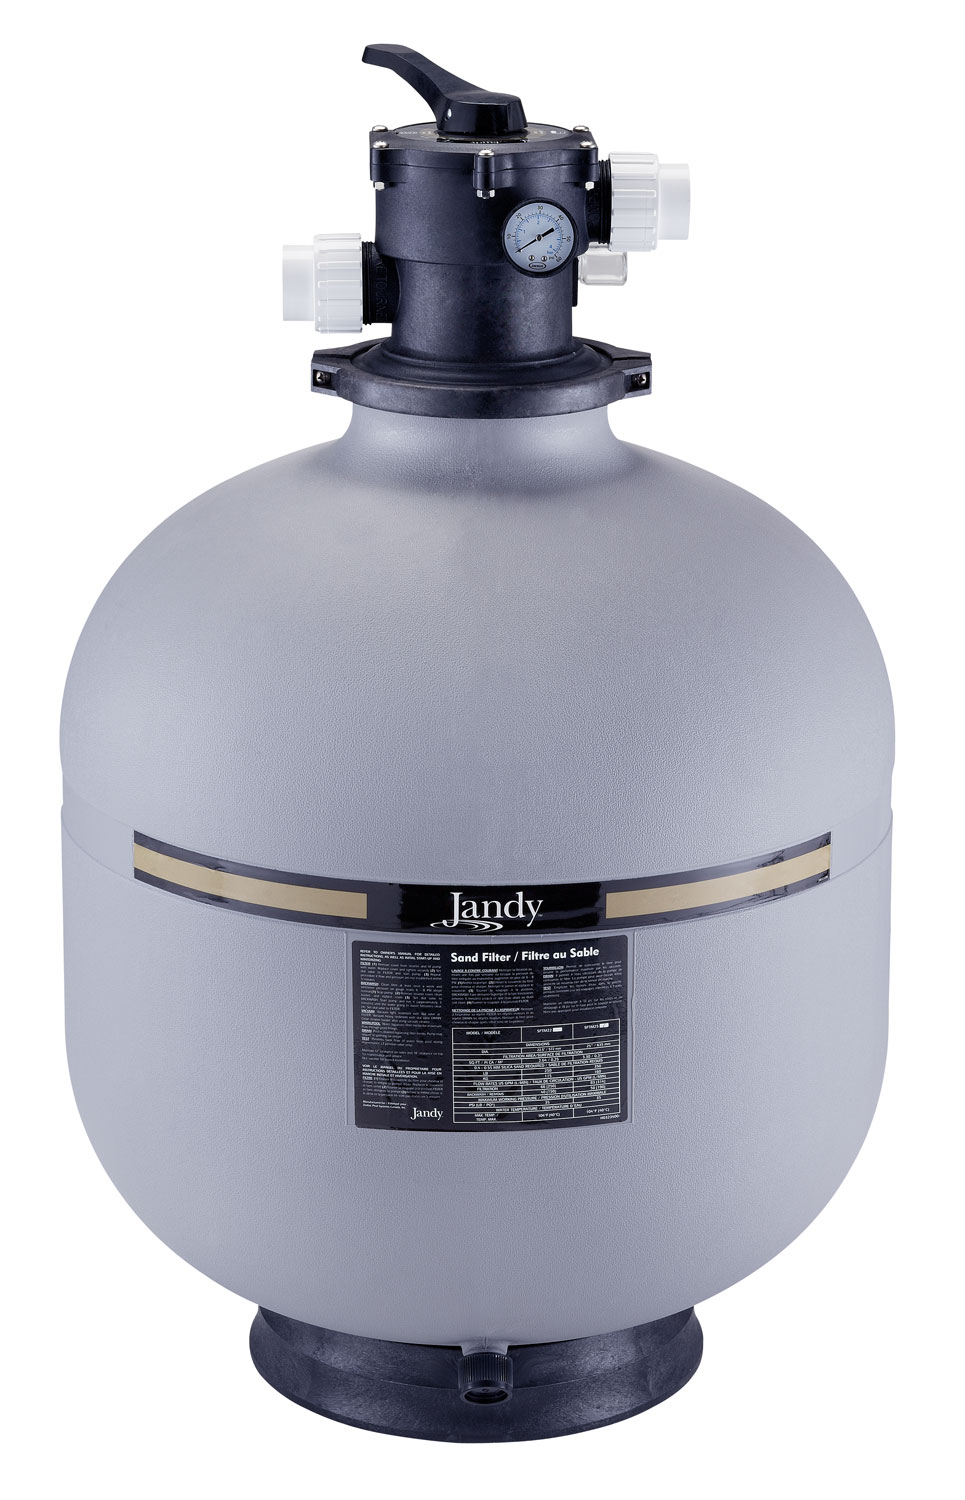 Jandy Pro Series SFTM Top Mount Pool Sand Filter